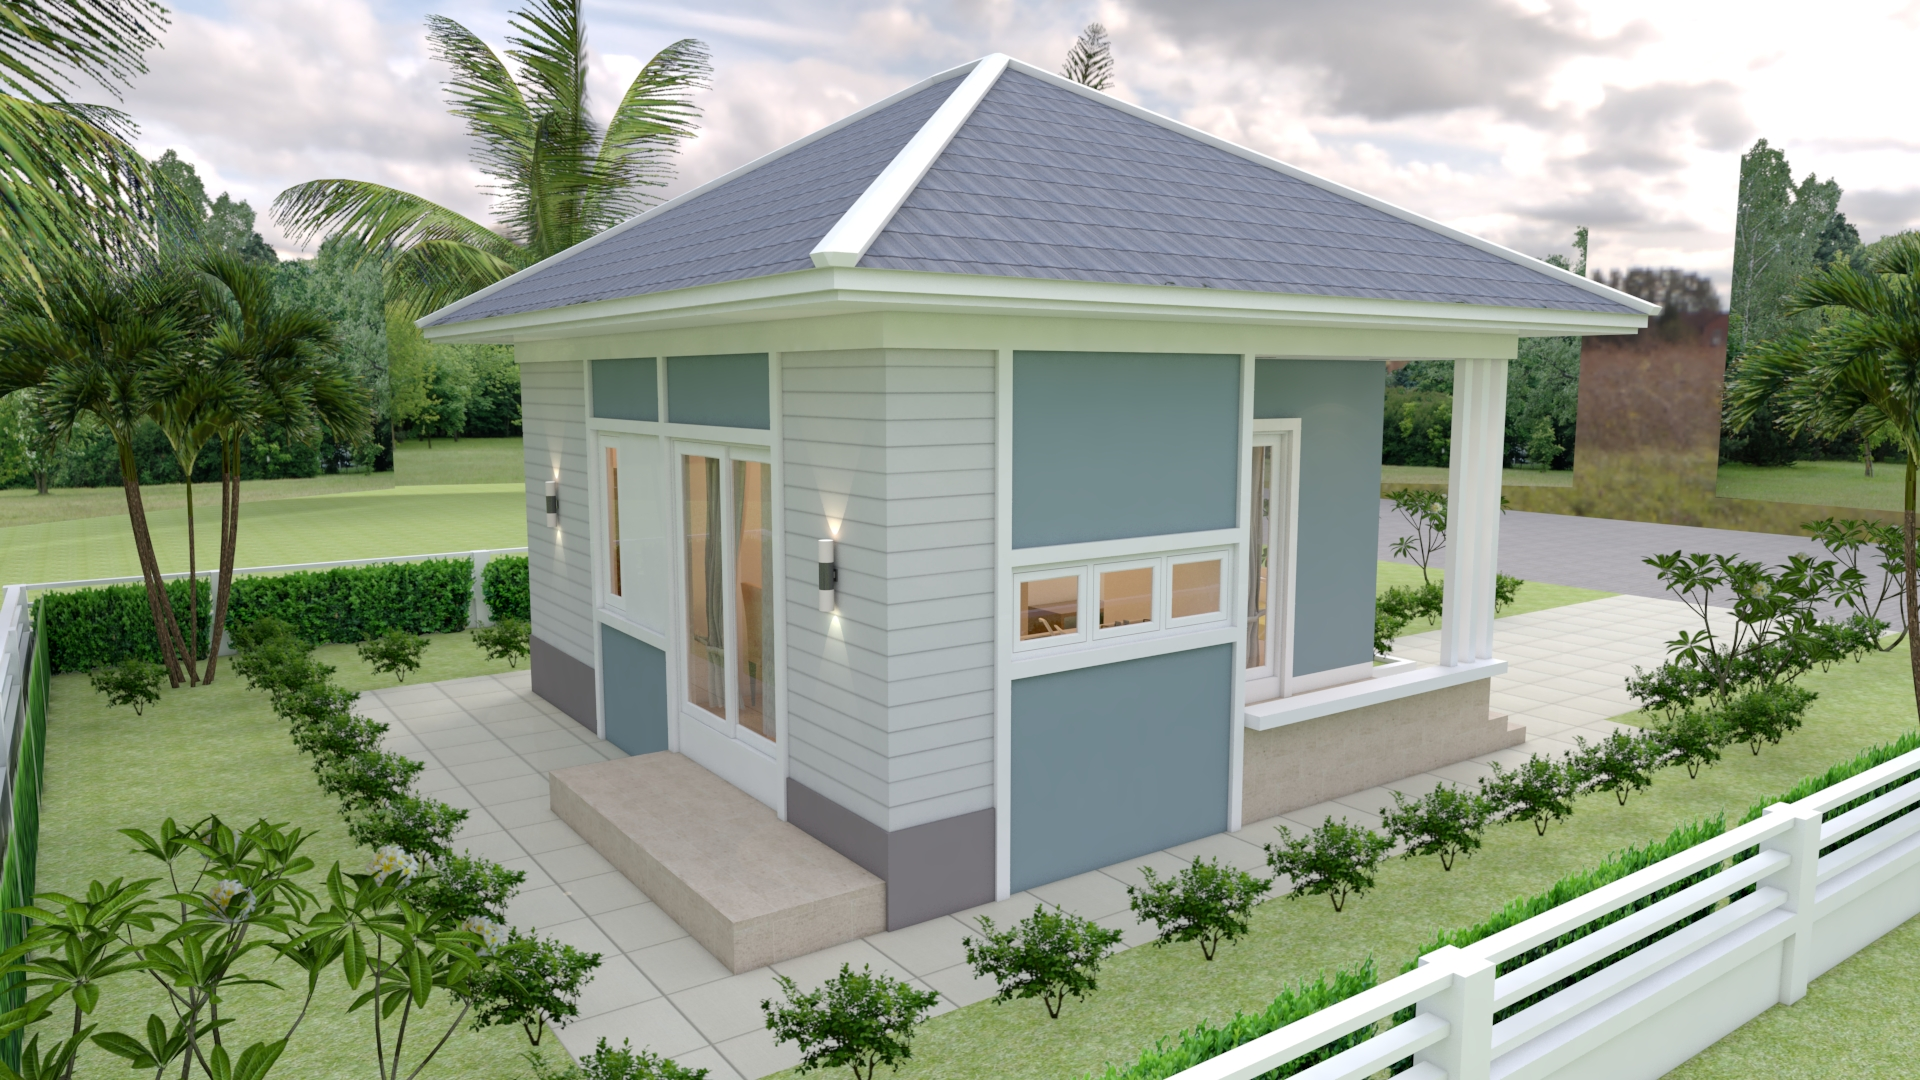 The Small Home 7x7 Meter 24x24 Feet 2 Beds 3